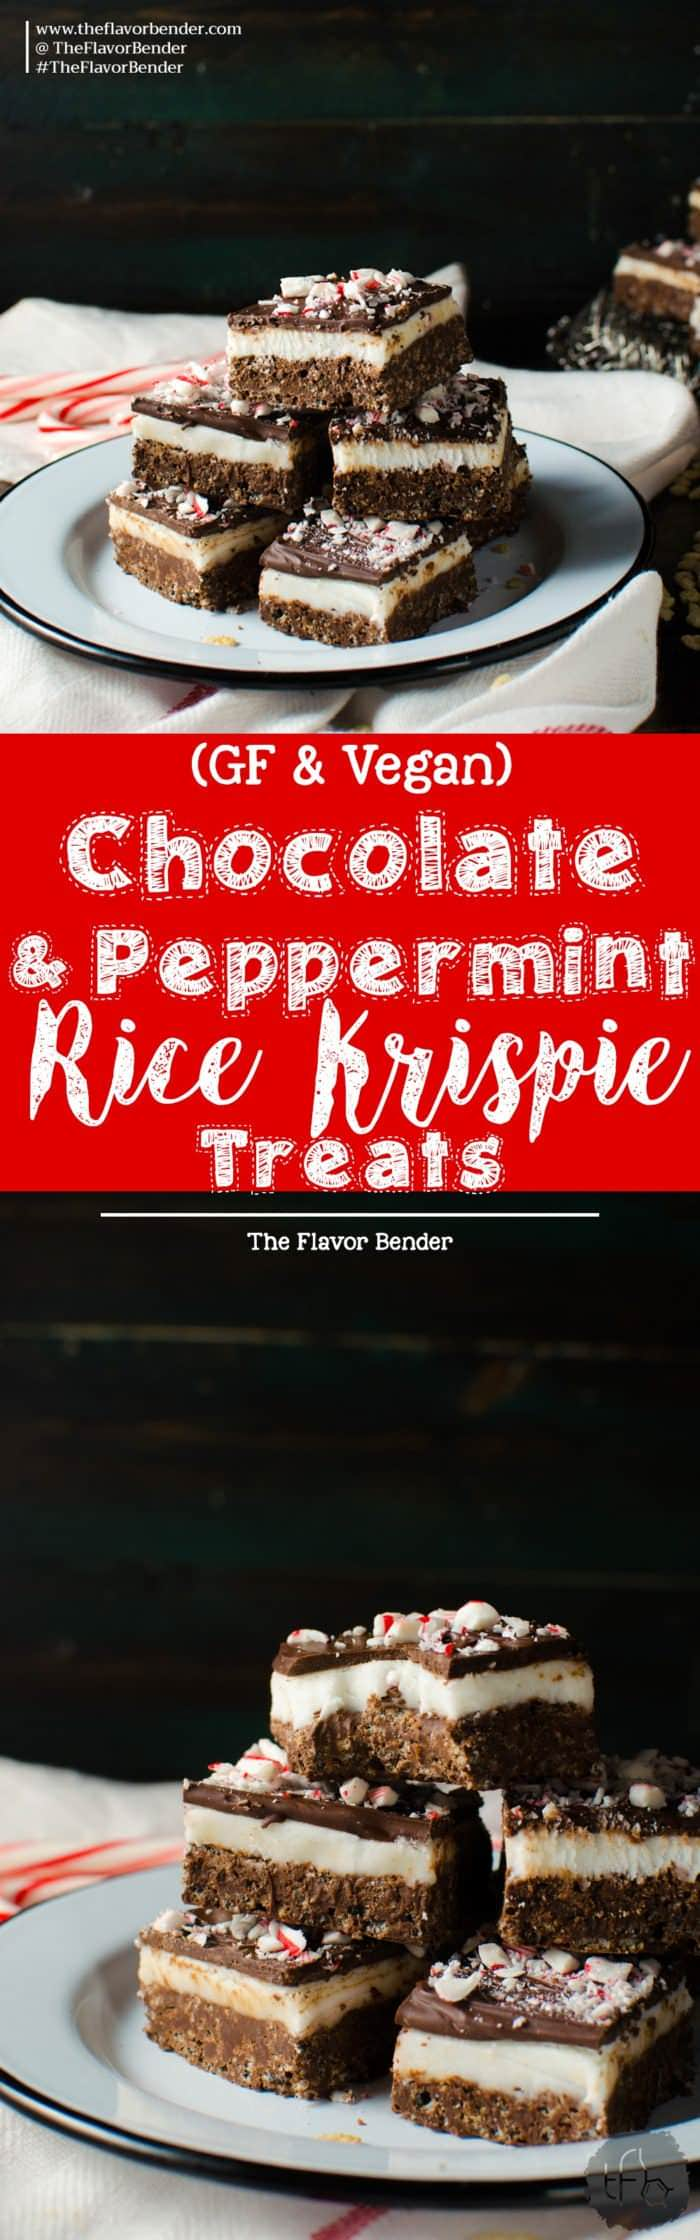 Chocolate Peppermint Rice Krispie Treats - These Rice Krispie Bars have a crunchy, cripsy dark chocolate rice krispie base with a soft refreshing peppermint center and topped with a thin layer of dark chocolate! An addictive Chocolate peppermint treat that's perfect for the holidays and for gift giving! Easy to make and kid-friendly. Gluten free and vegan friendly!